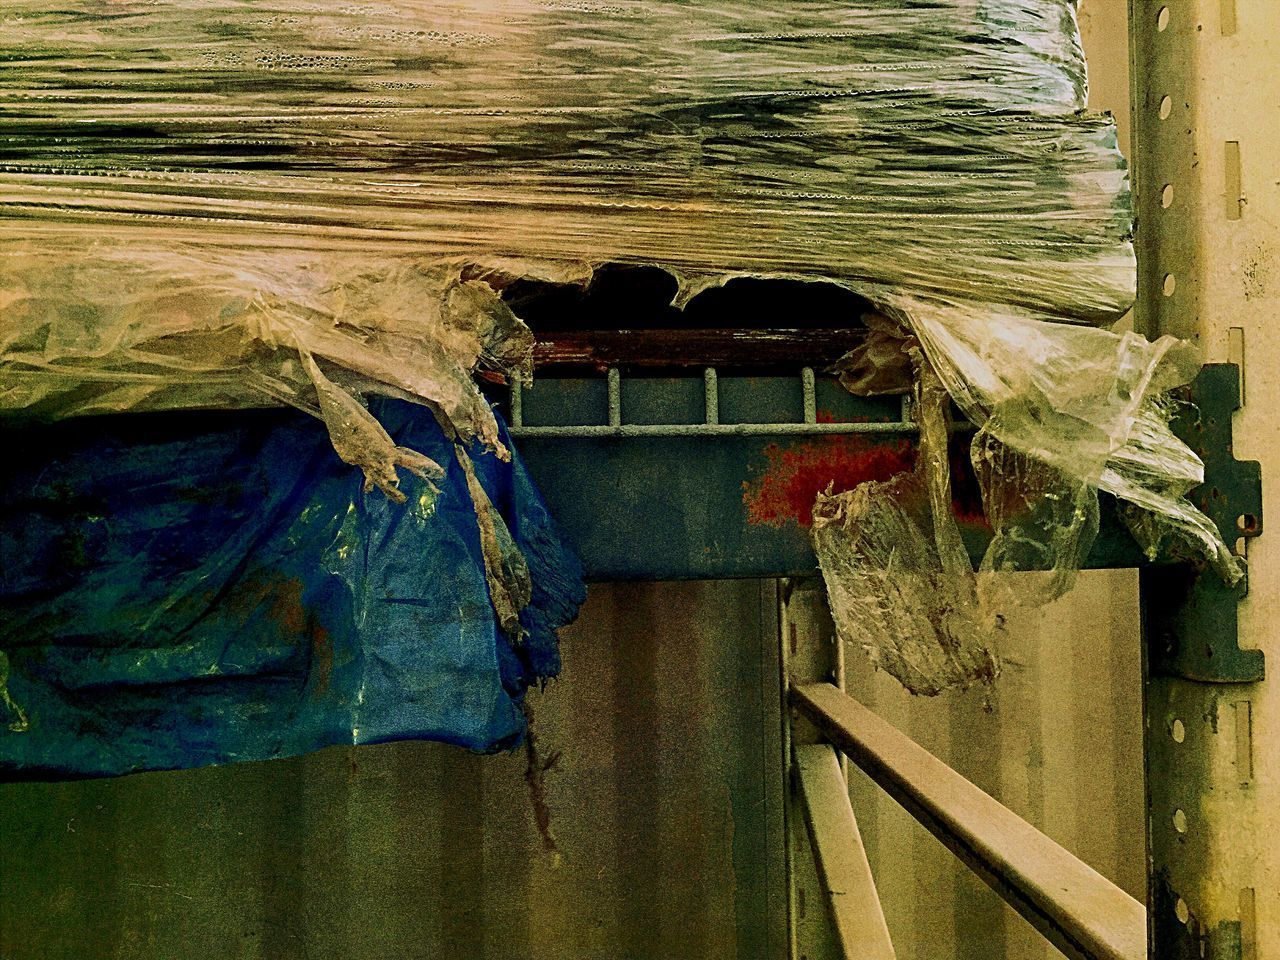 no people, day, wood - material, indoors, still life, hanging, textile, close-up, architecture, clothing, old, nature, container, plant, blue, plastic, focus on foreground, abandoned